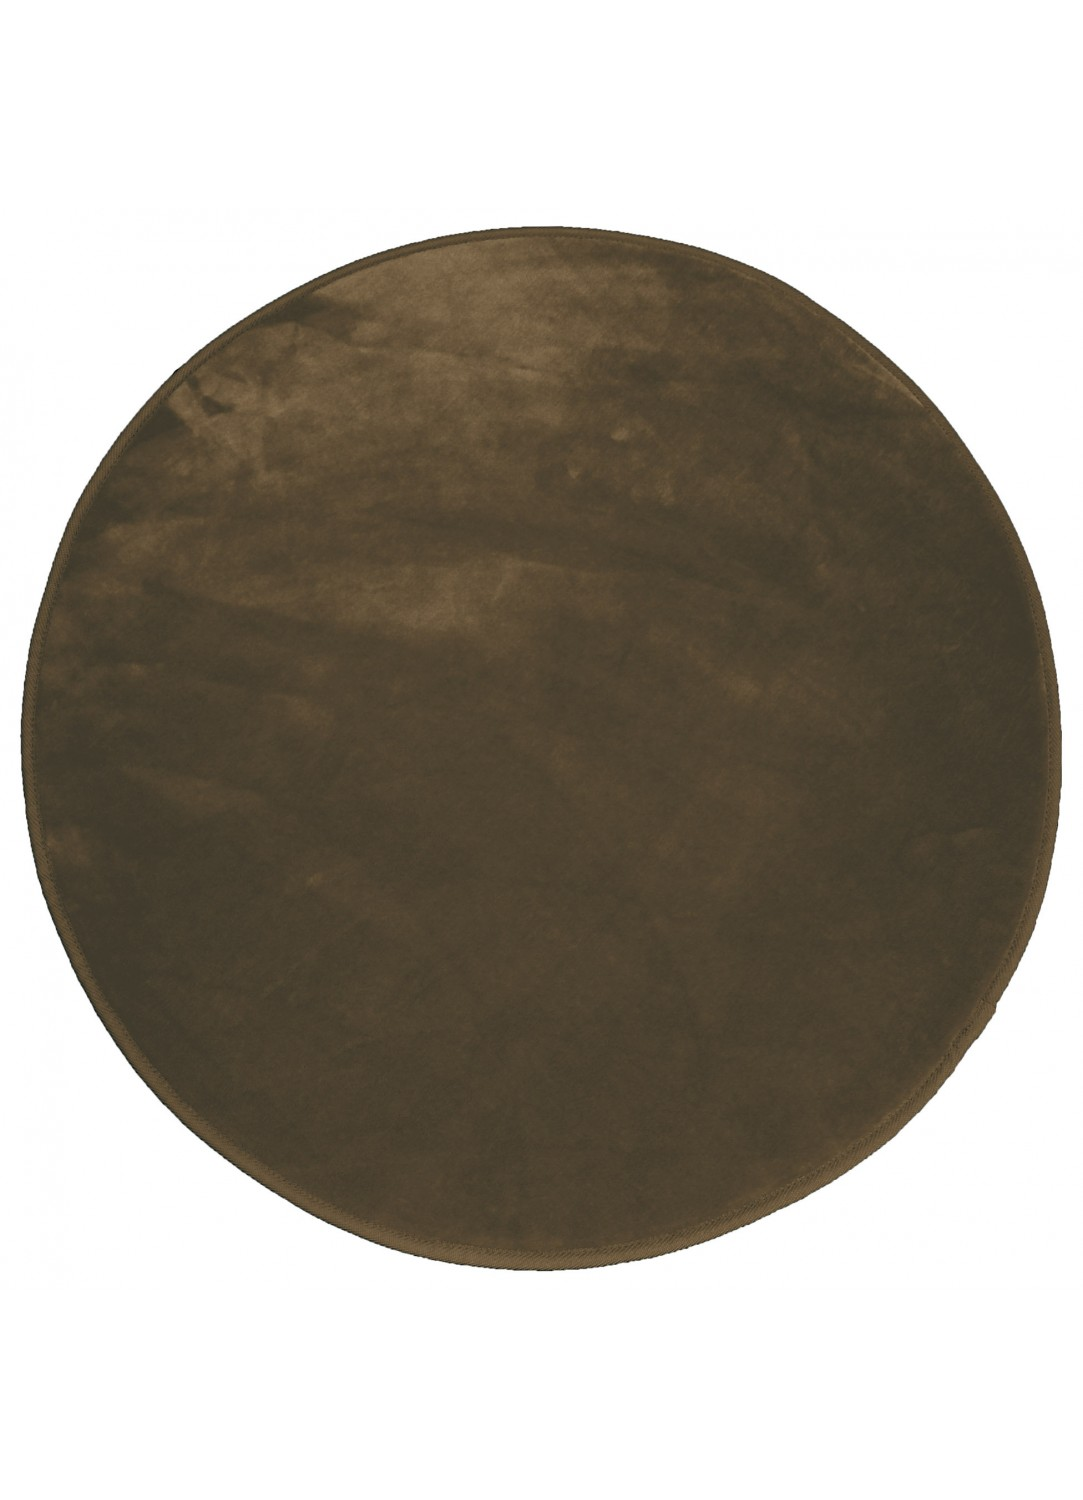 tapis rond en velours uni choco homemaison vente en ligne tapis d co. Black Bedroom Furniture Sets. Home Design Ideas